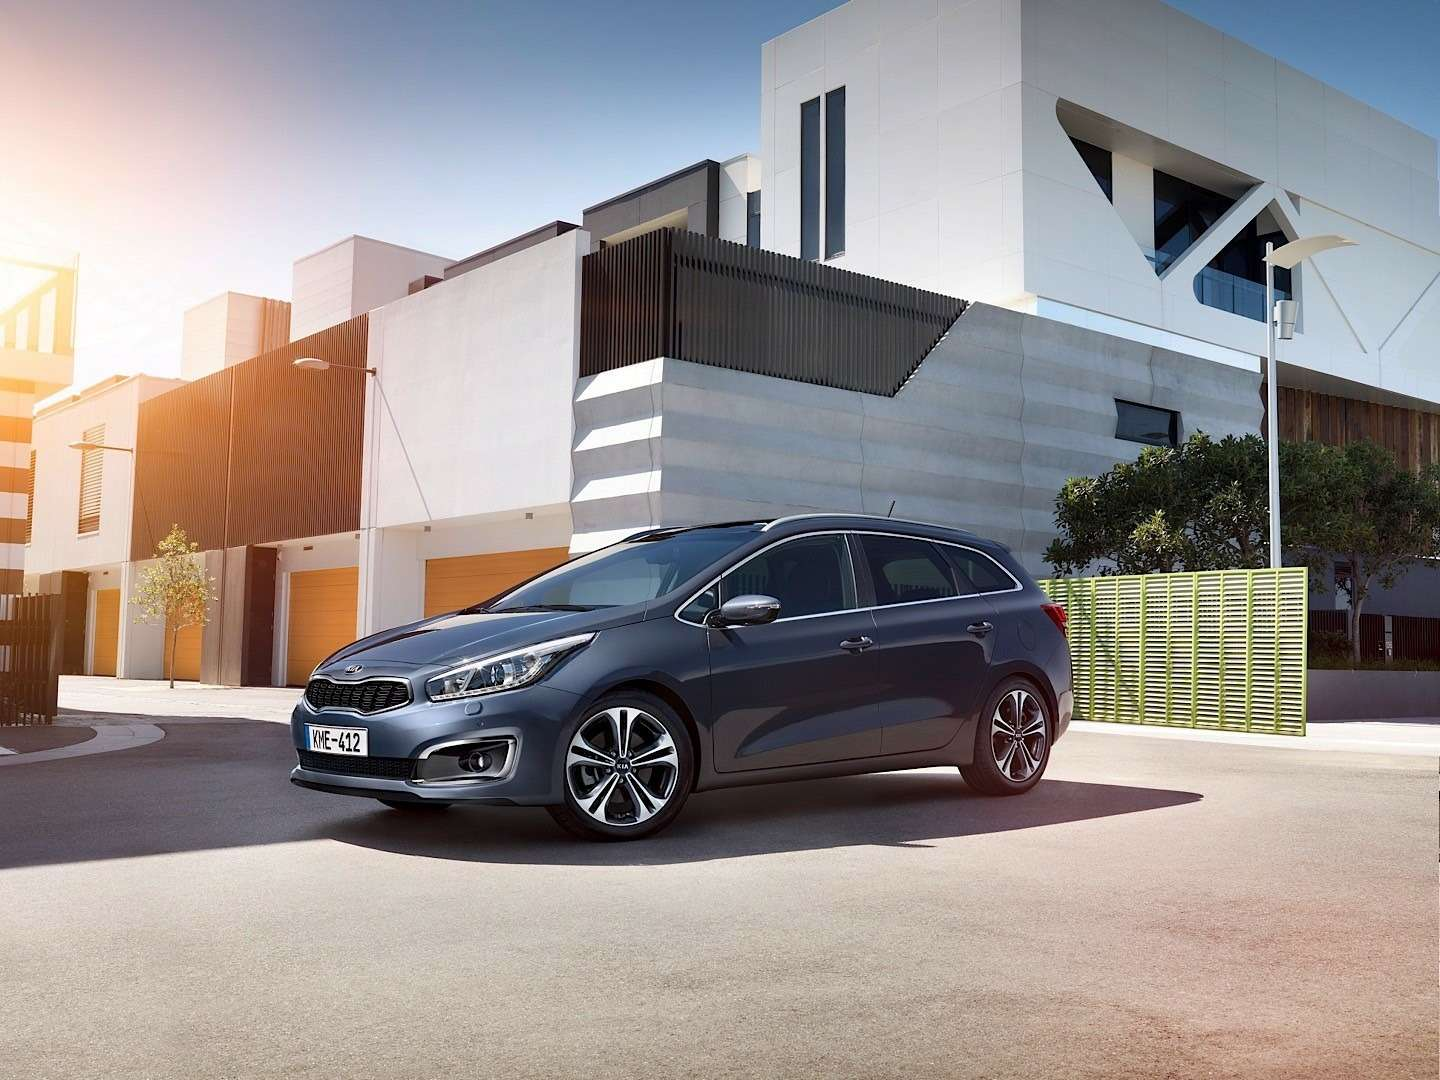 2016-kia-cee-d-brings-subtle-visual-upgrades-new-engines-and-sporty-gt-line-photo-gallery_5